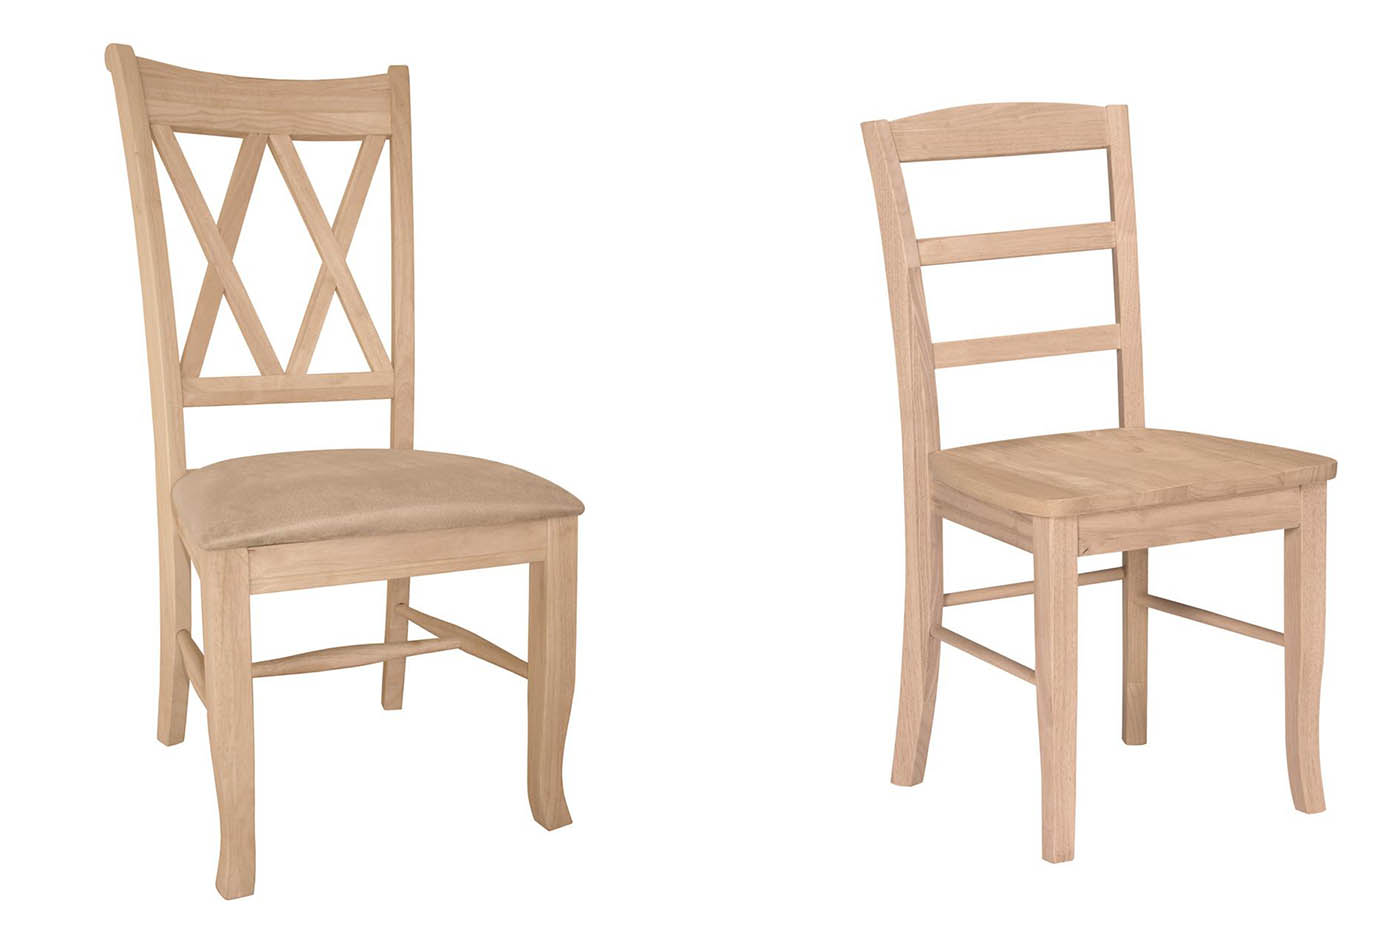 wooden high chair nz up bowery nyc unfinished wood kitchen chairs ideas